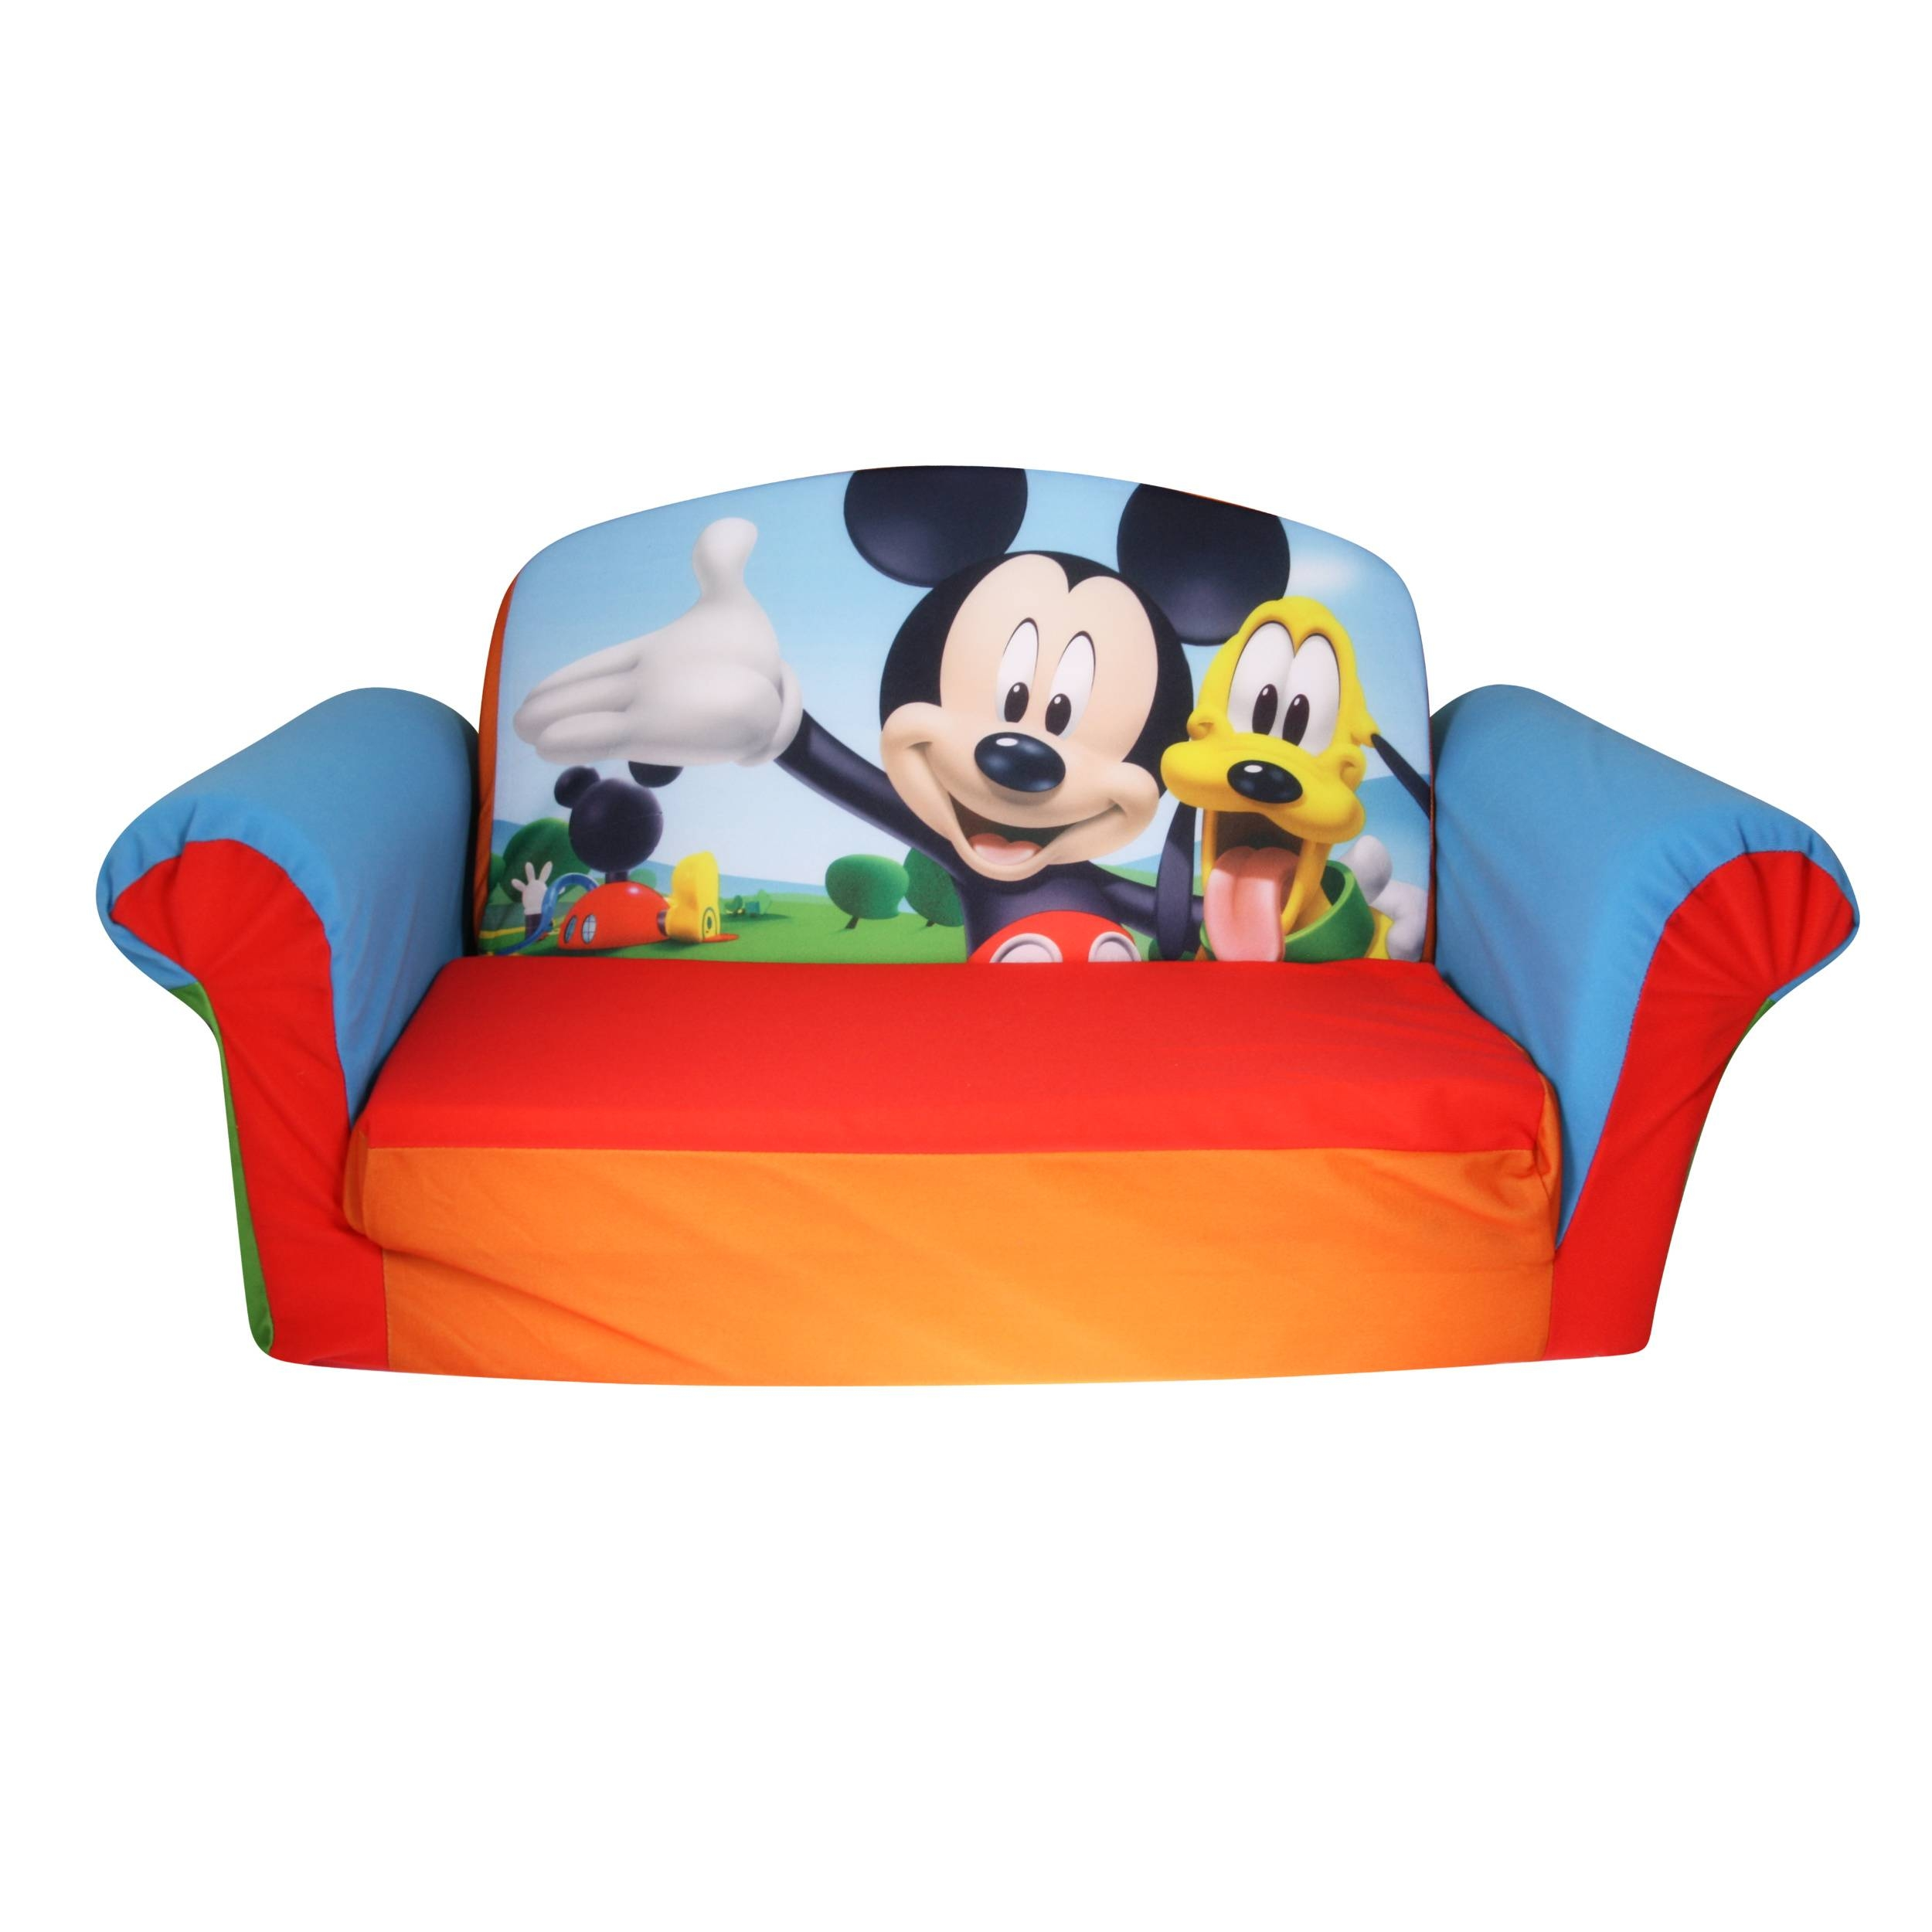 Marshmallow Furniture, Children's 2 In 1 Flip Open Foam Sofa for Mickey Mouse Clubhouse Couches (Image 3 of 15)